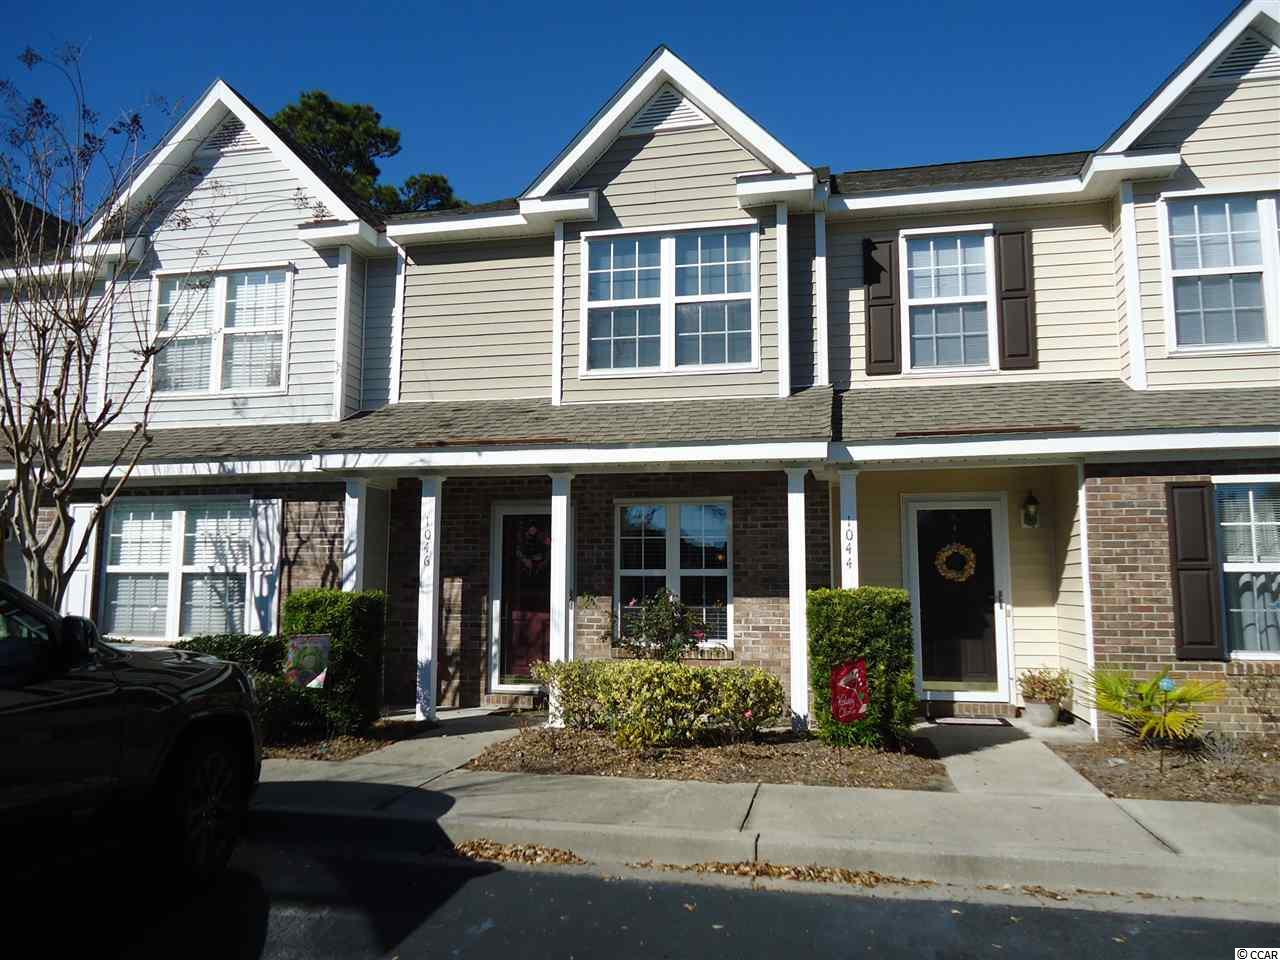 Townhouse MLS:1901089 PARKVIEW SUBDIVISION - 17TH AVE.  1046 Portico Loop Myrtle Beach SC